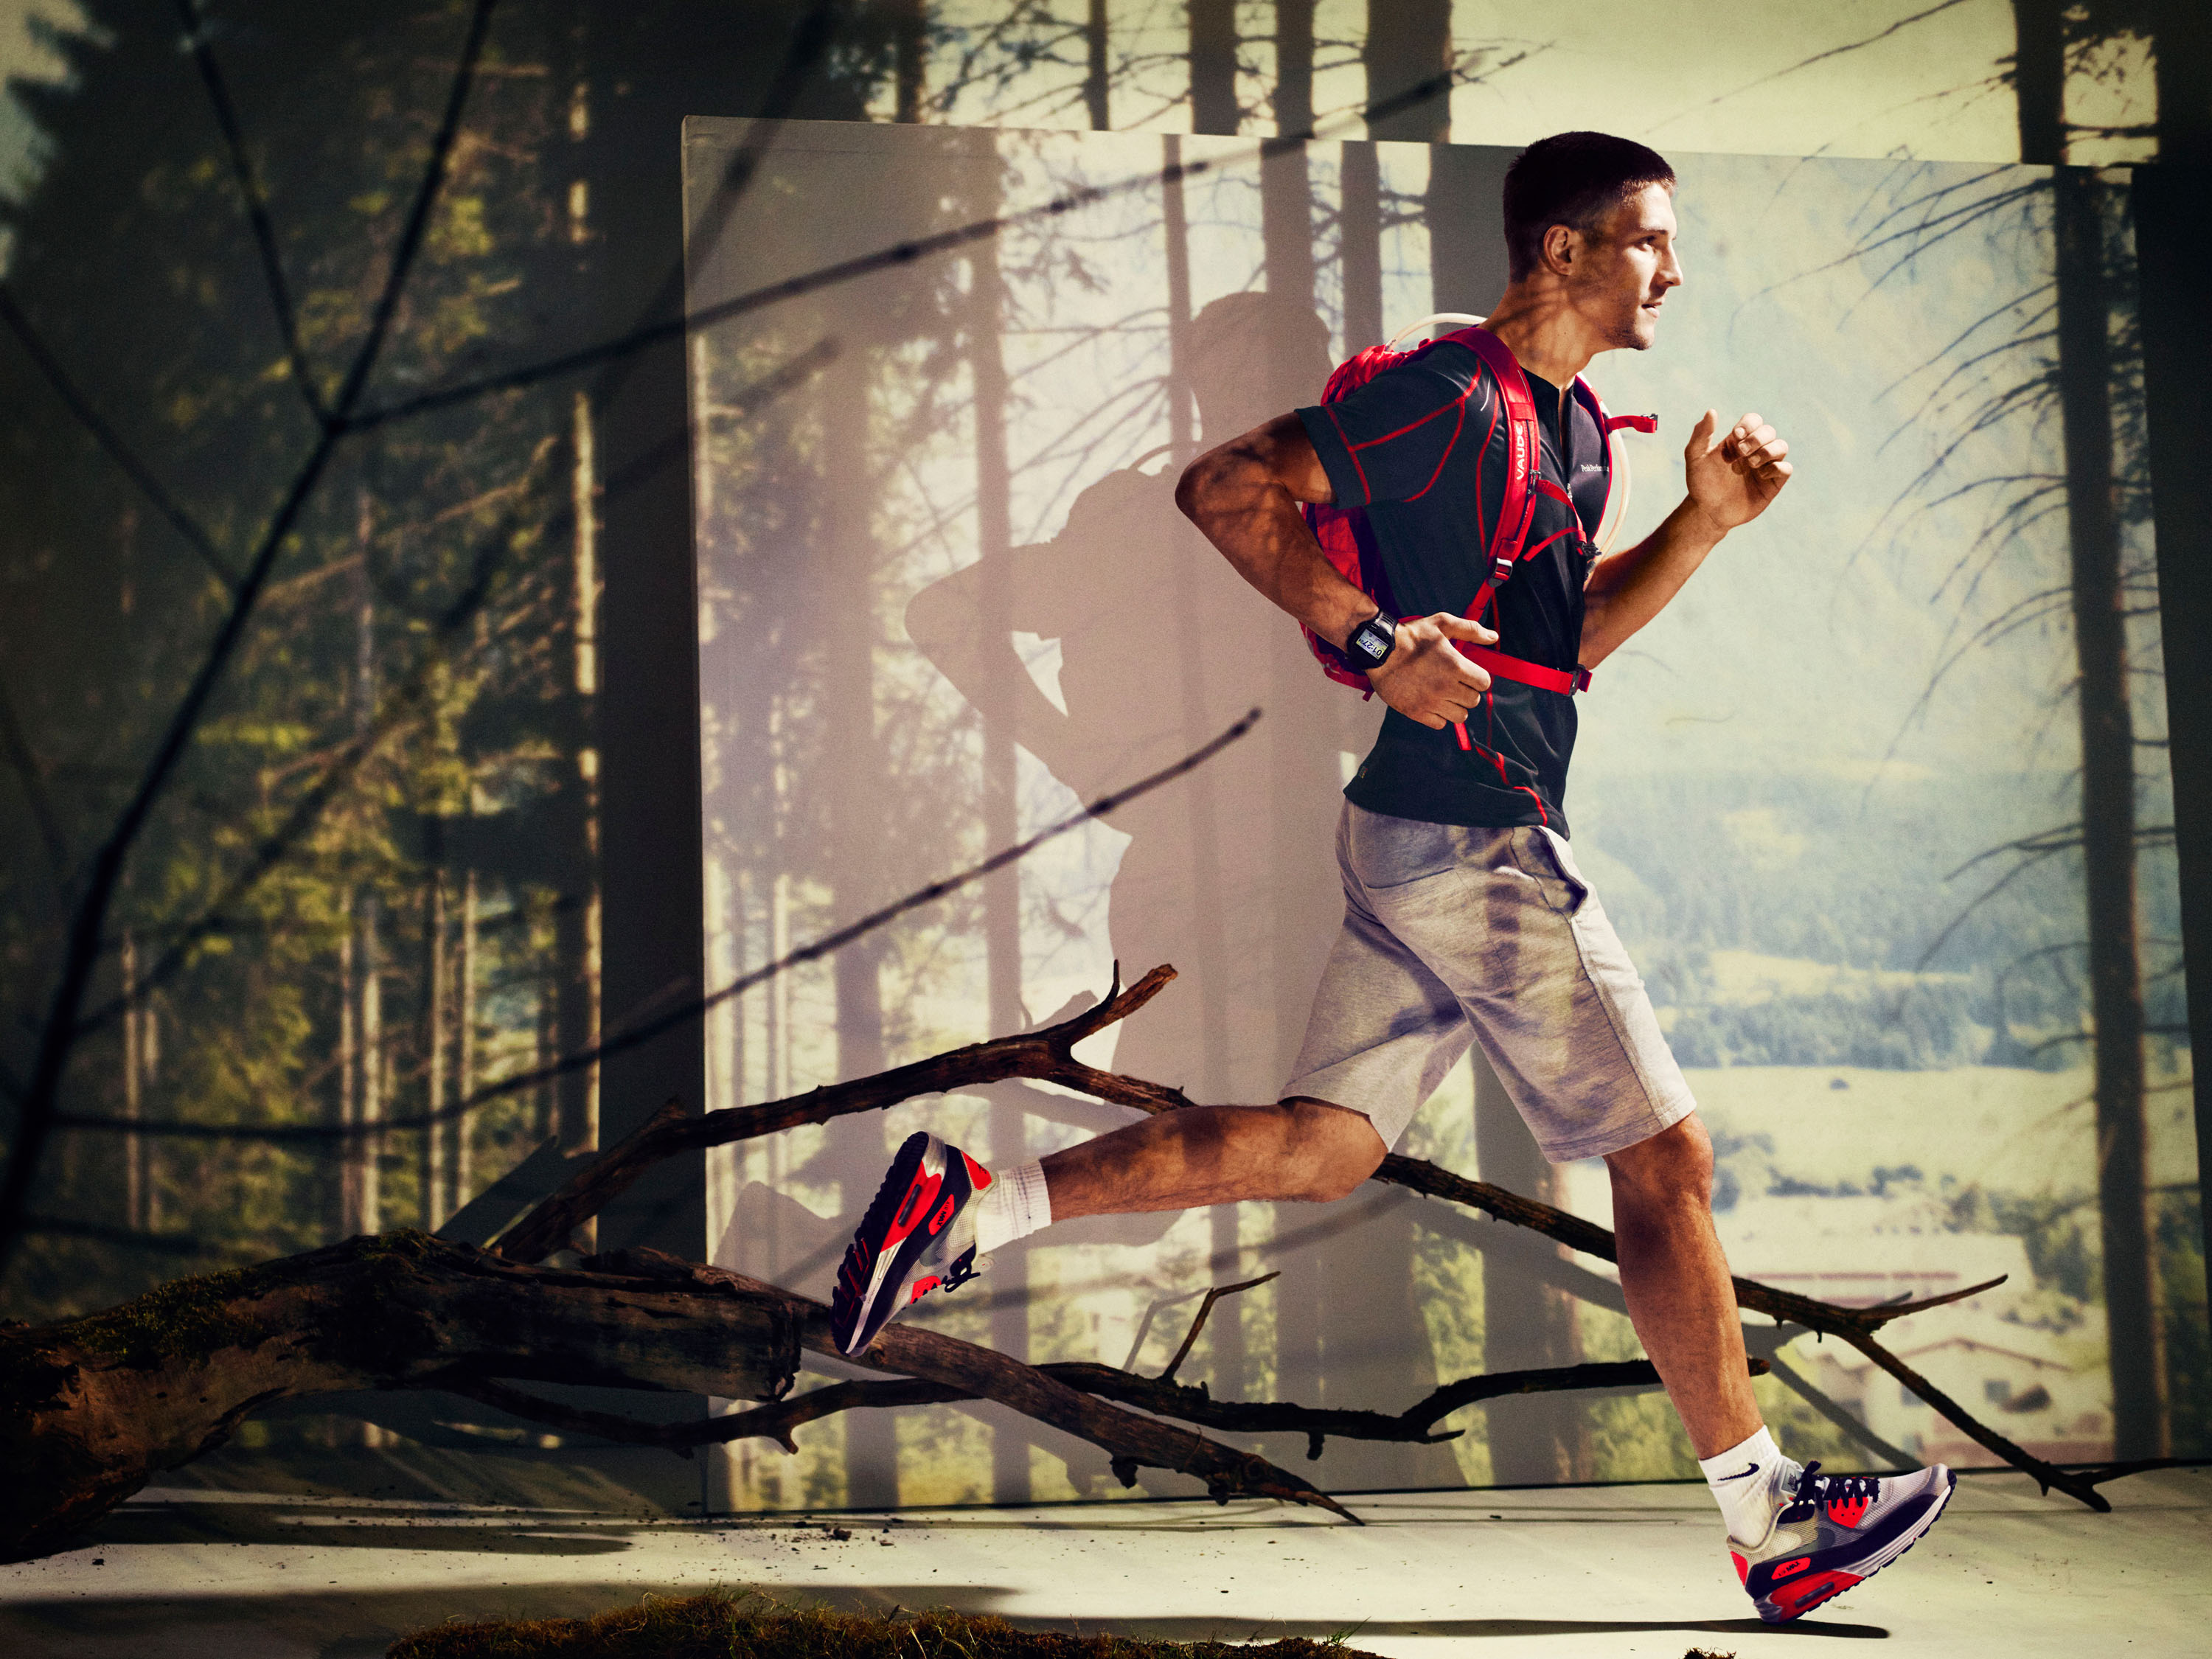 Red Bull Active Style, Sport, Detlef Schneider Photography